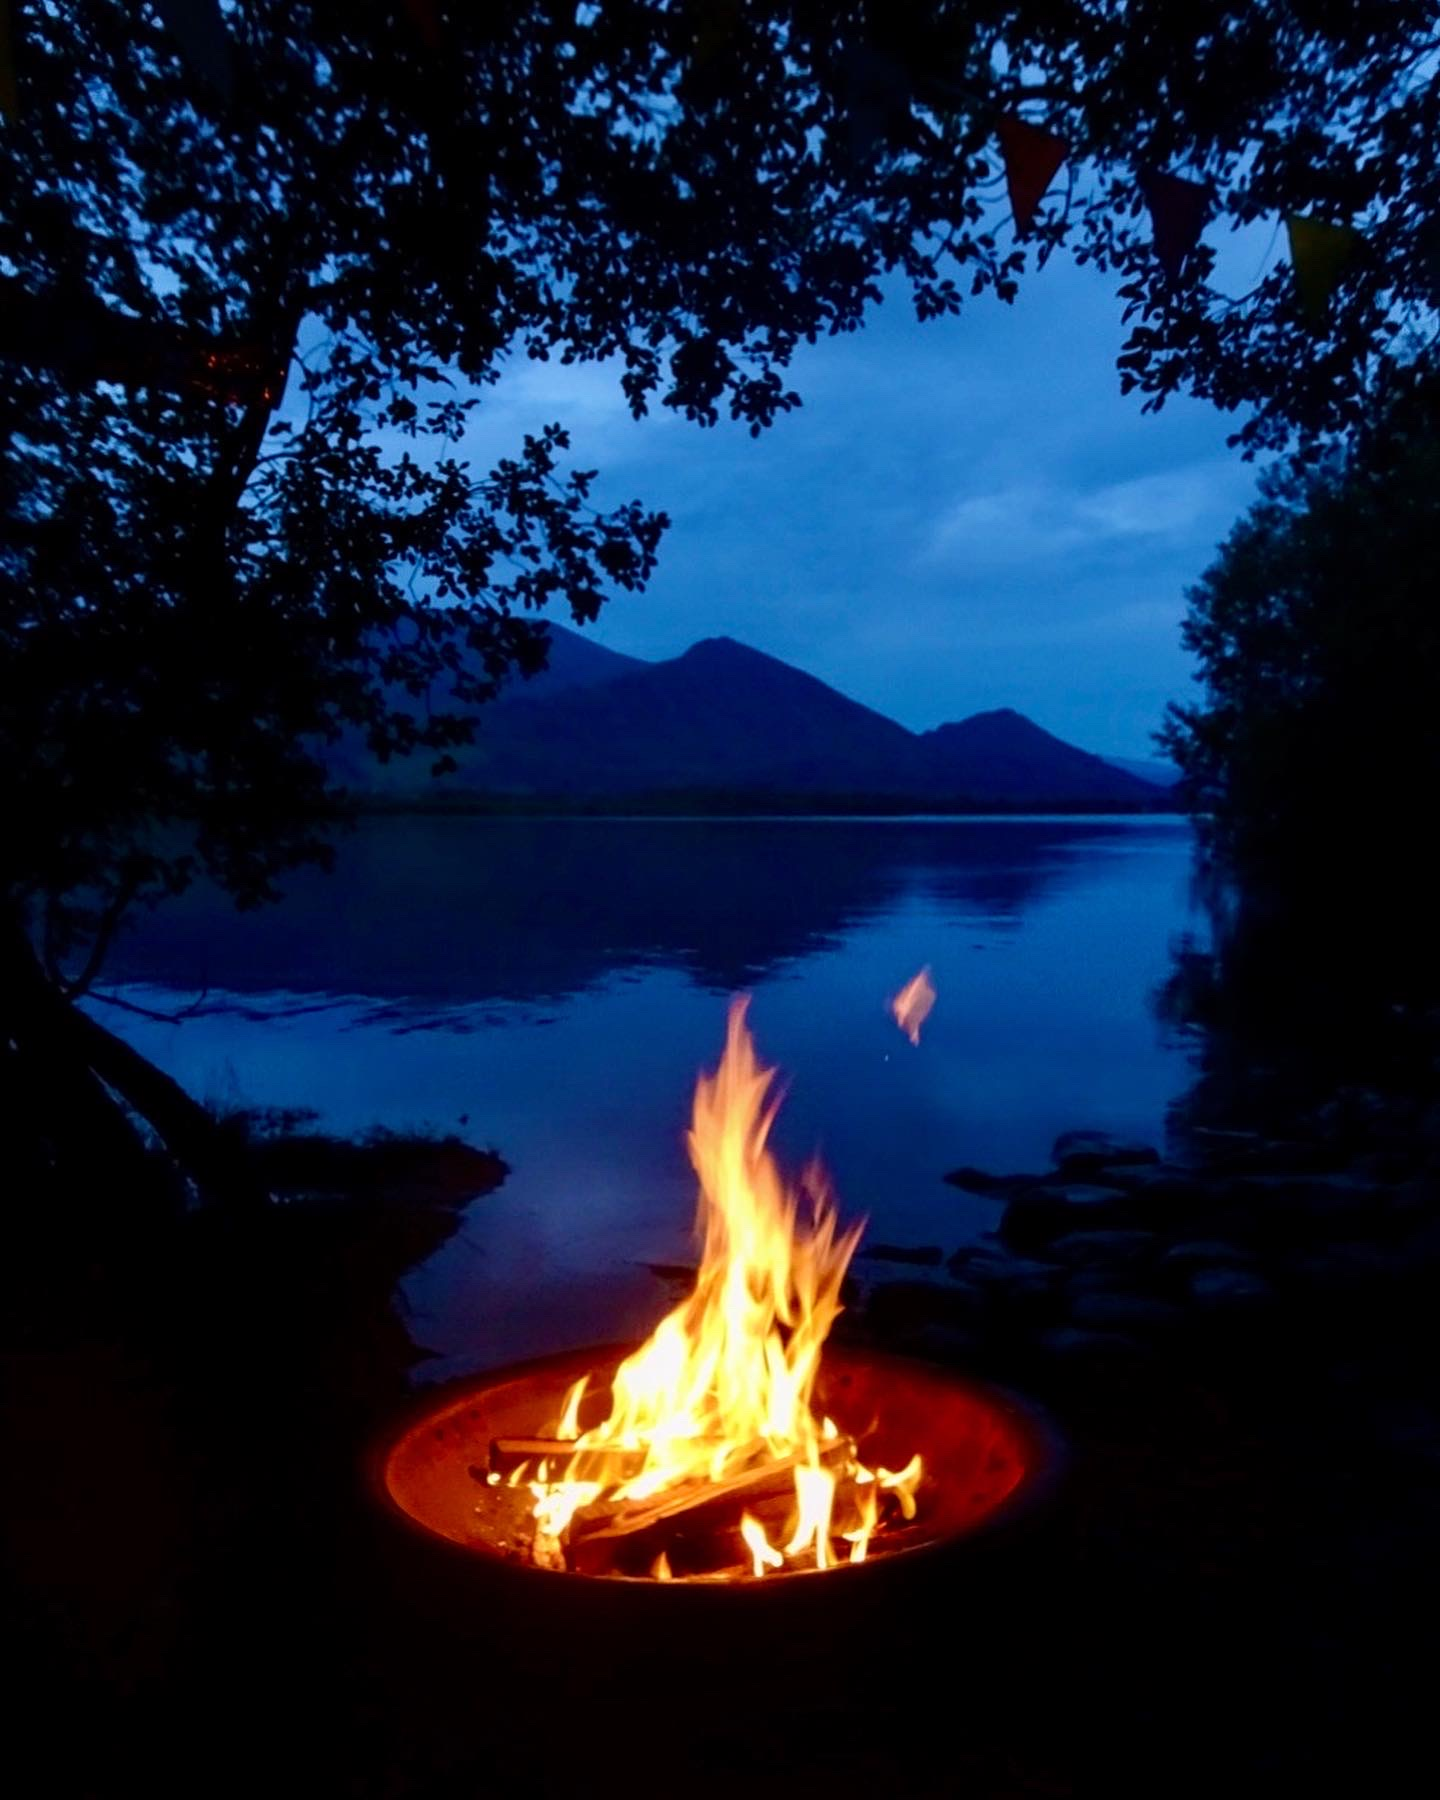 Nighttime; lake and mountains through a gap in the trees; on a stony beach, a brazier with a campfire burning